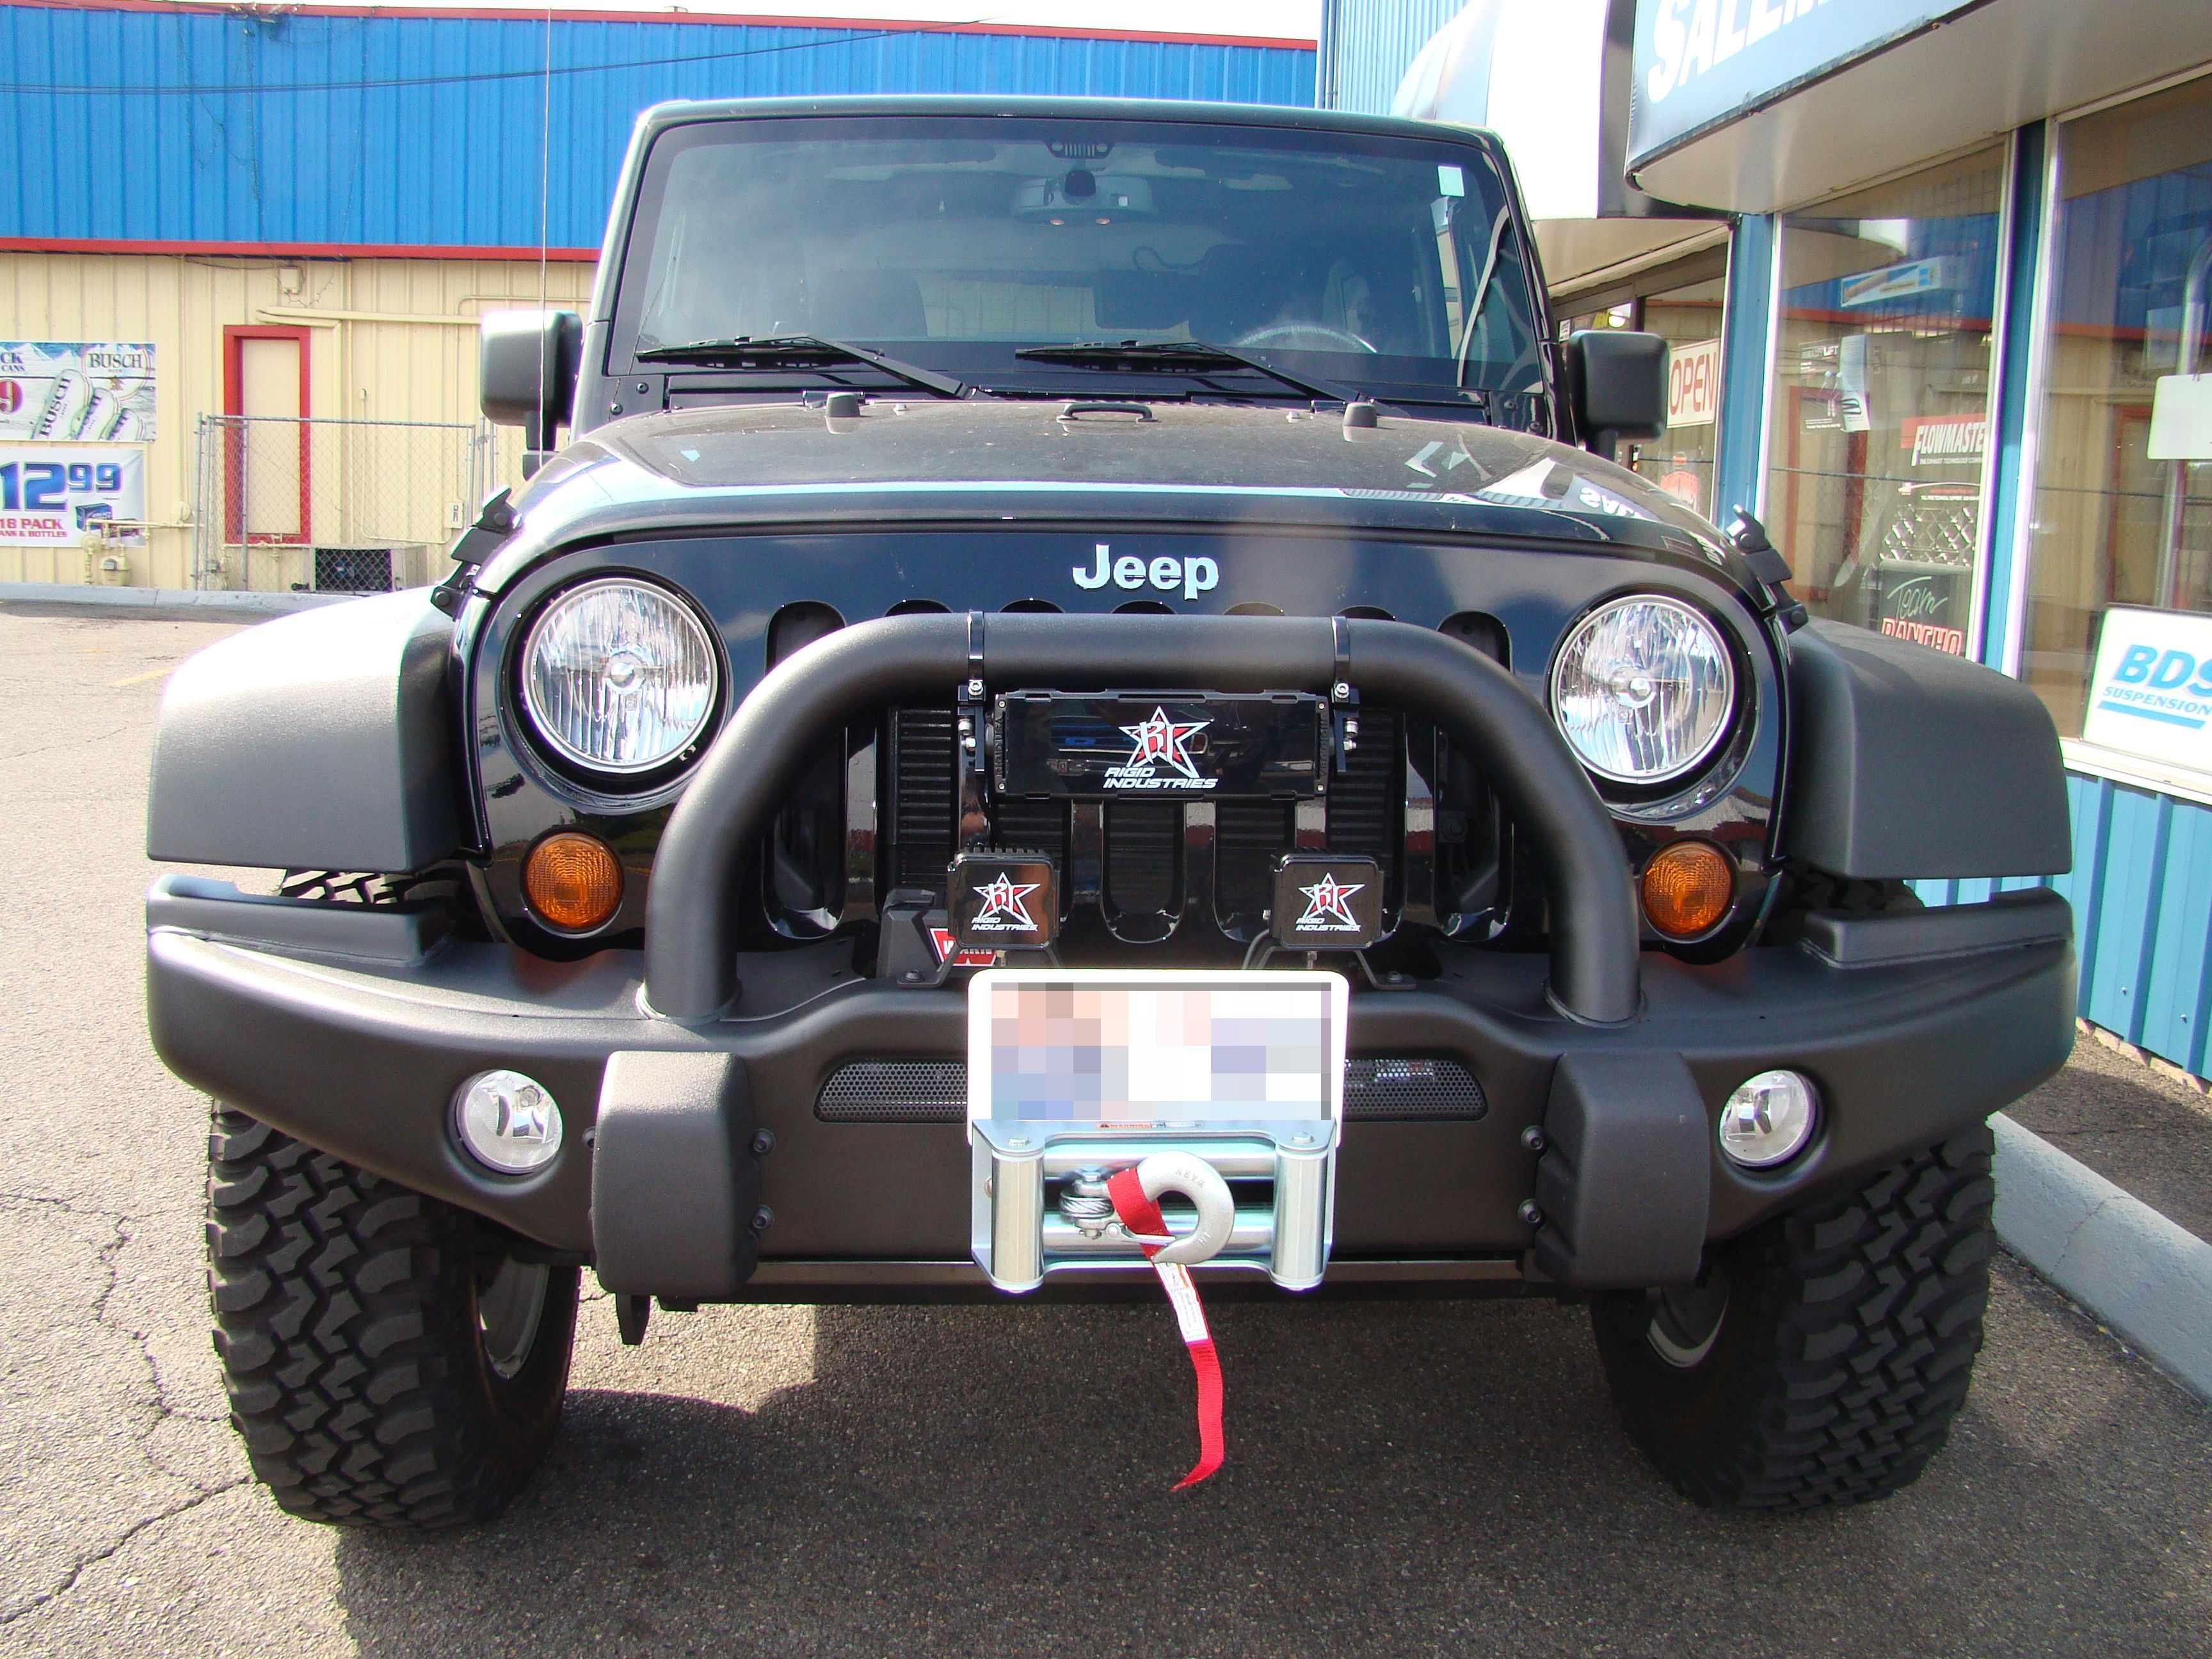 on this 2012 jeep wrangler jk we installed a aev front bumper with